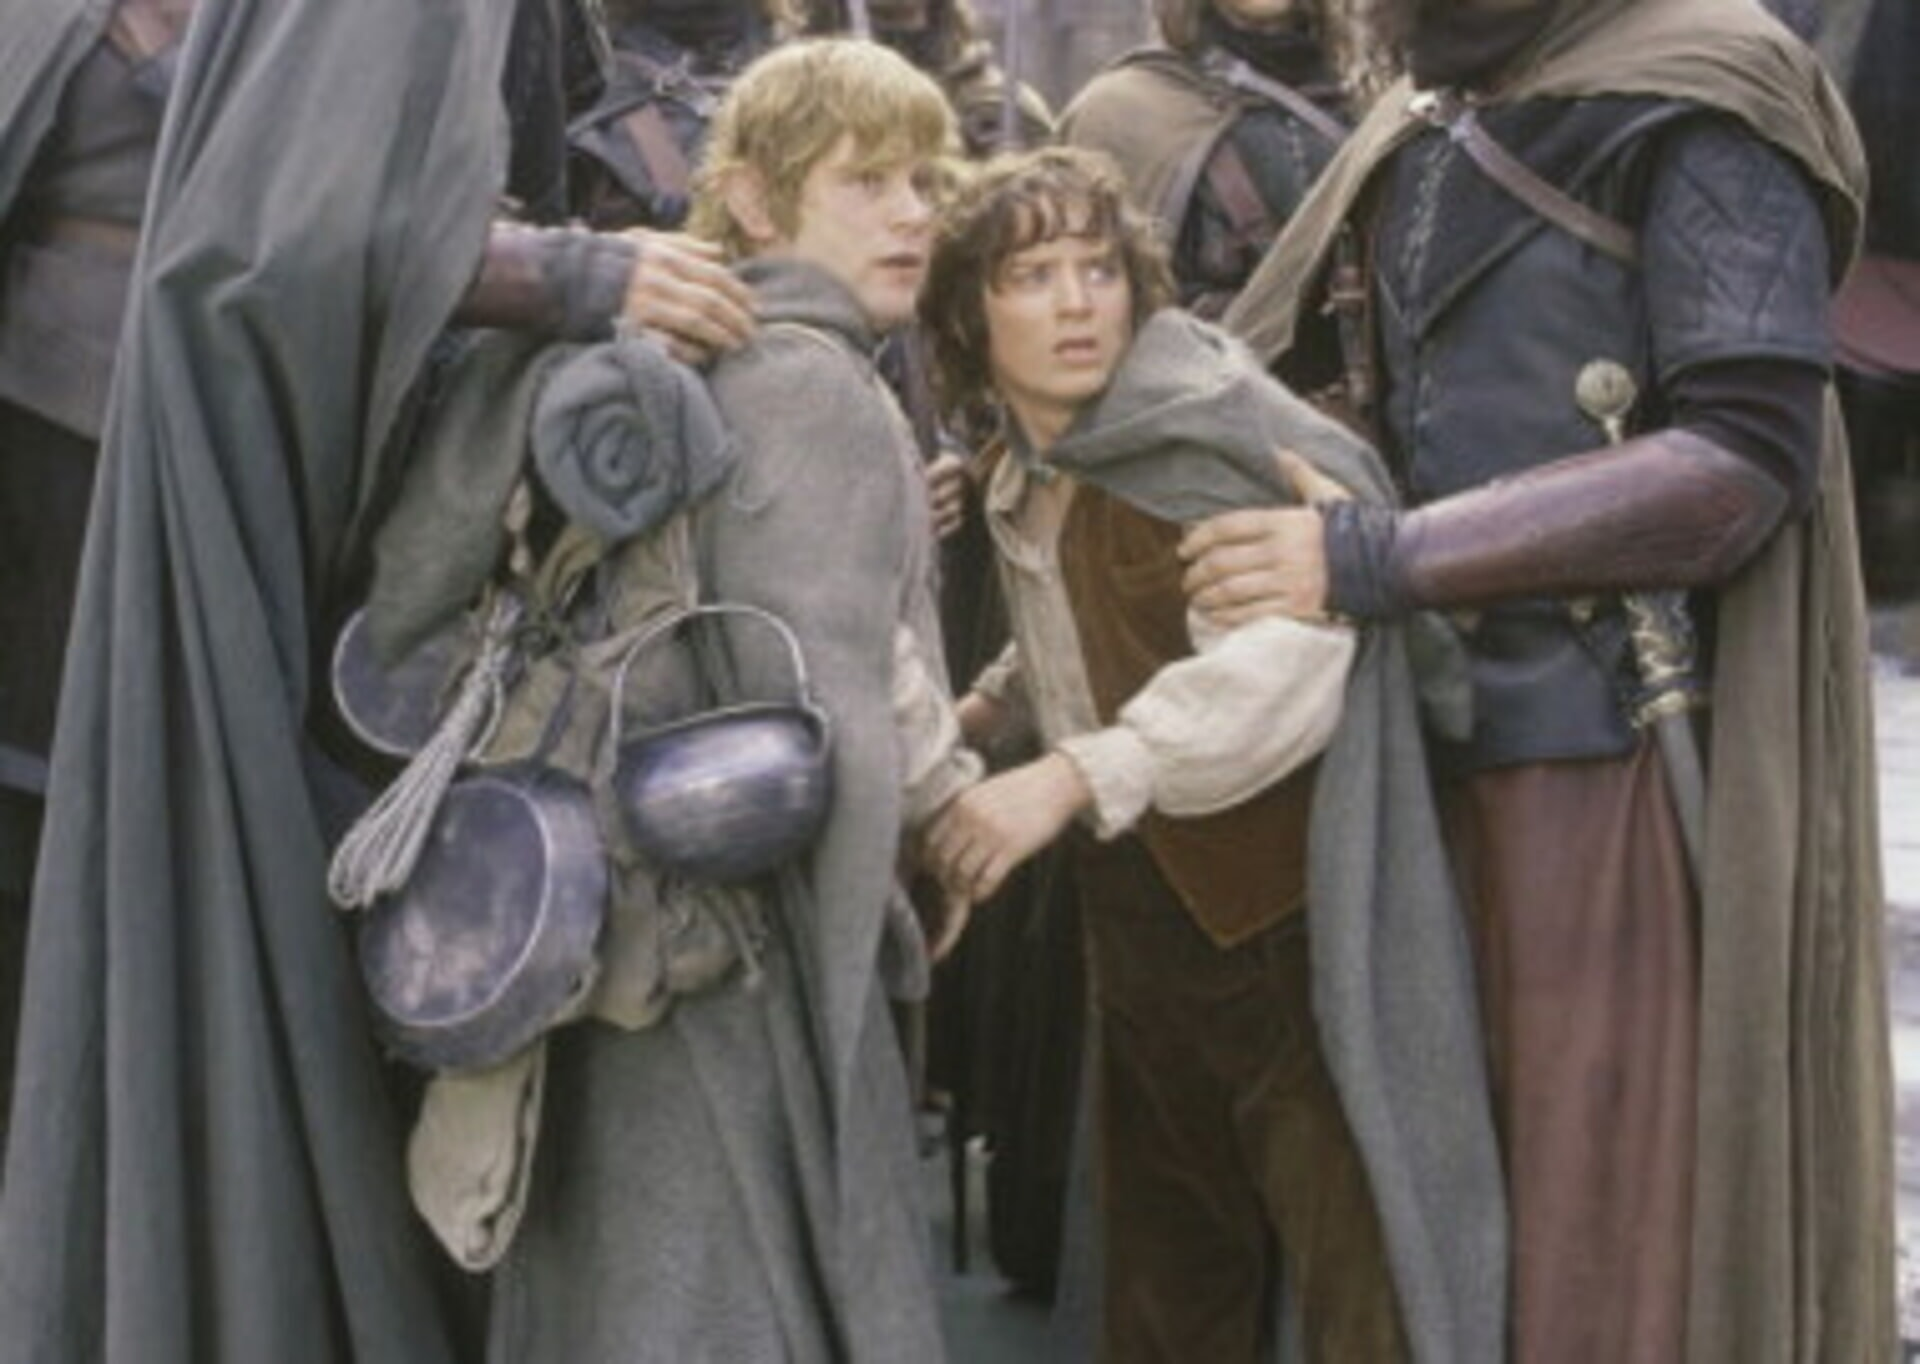 The Lord of the Rings: The Two Towers - Image 84